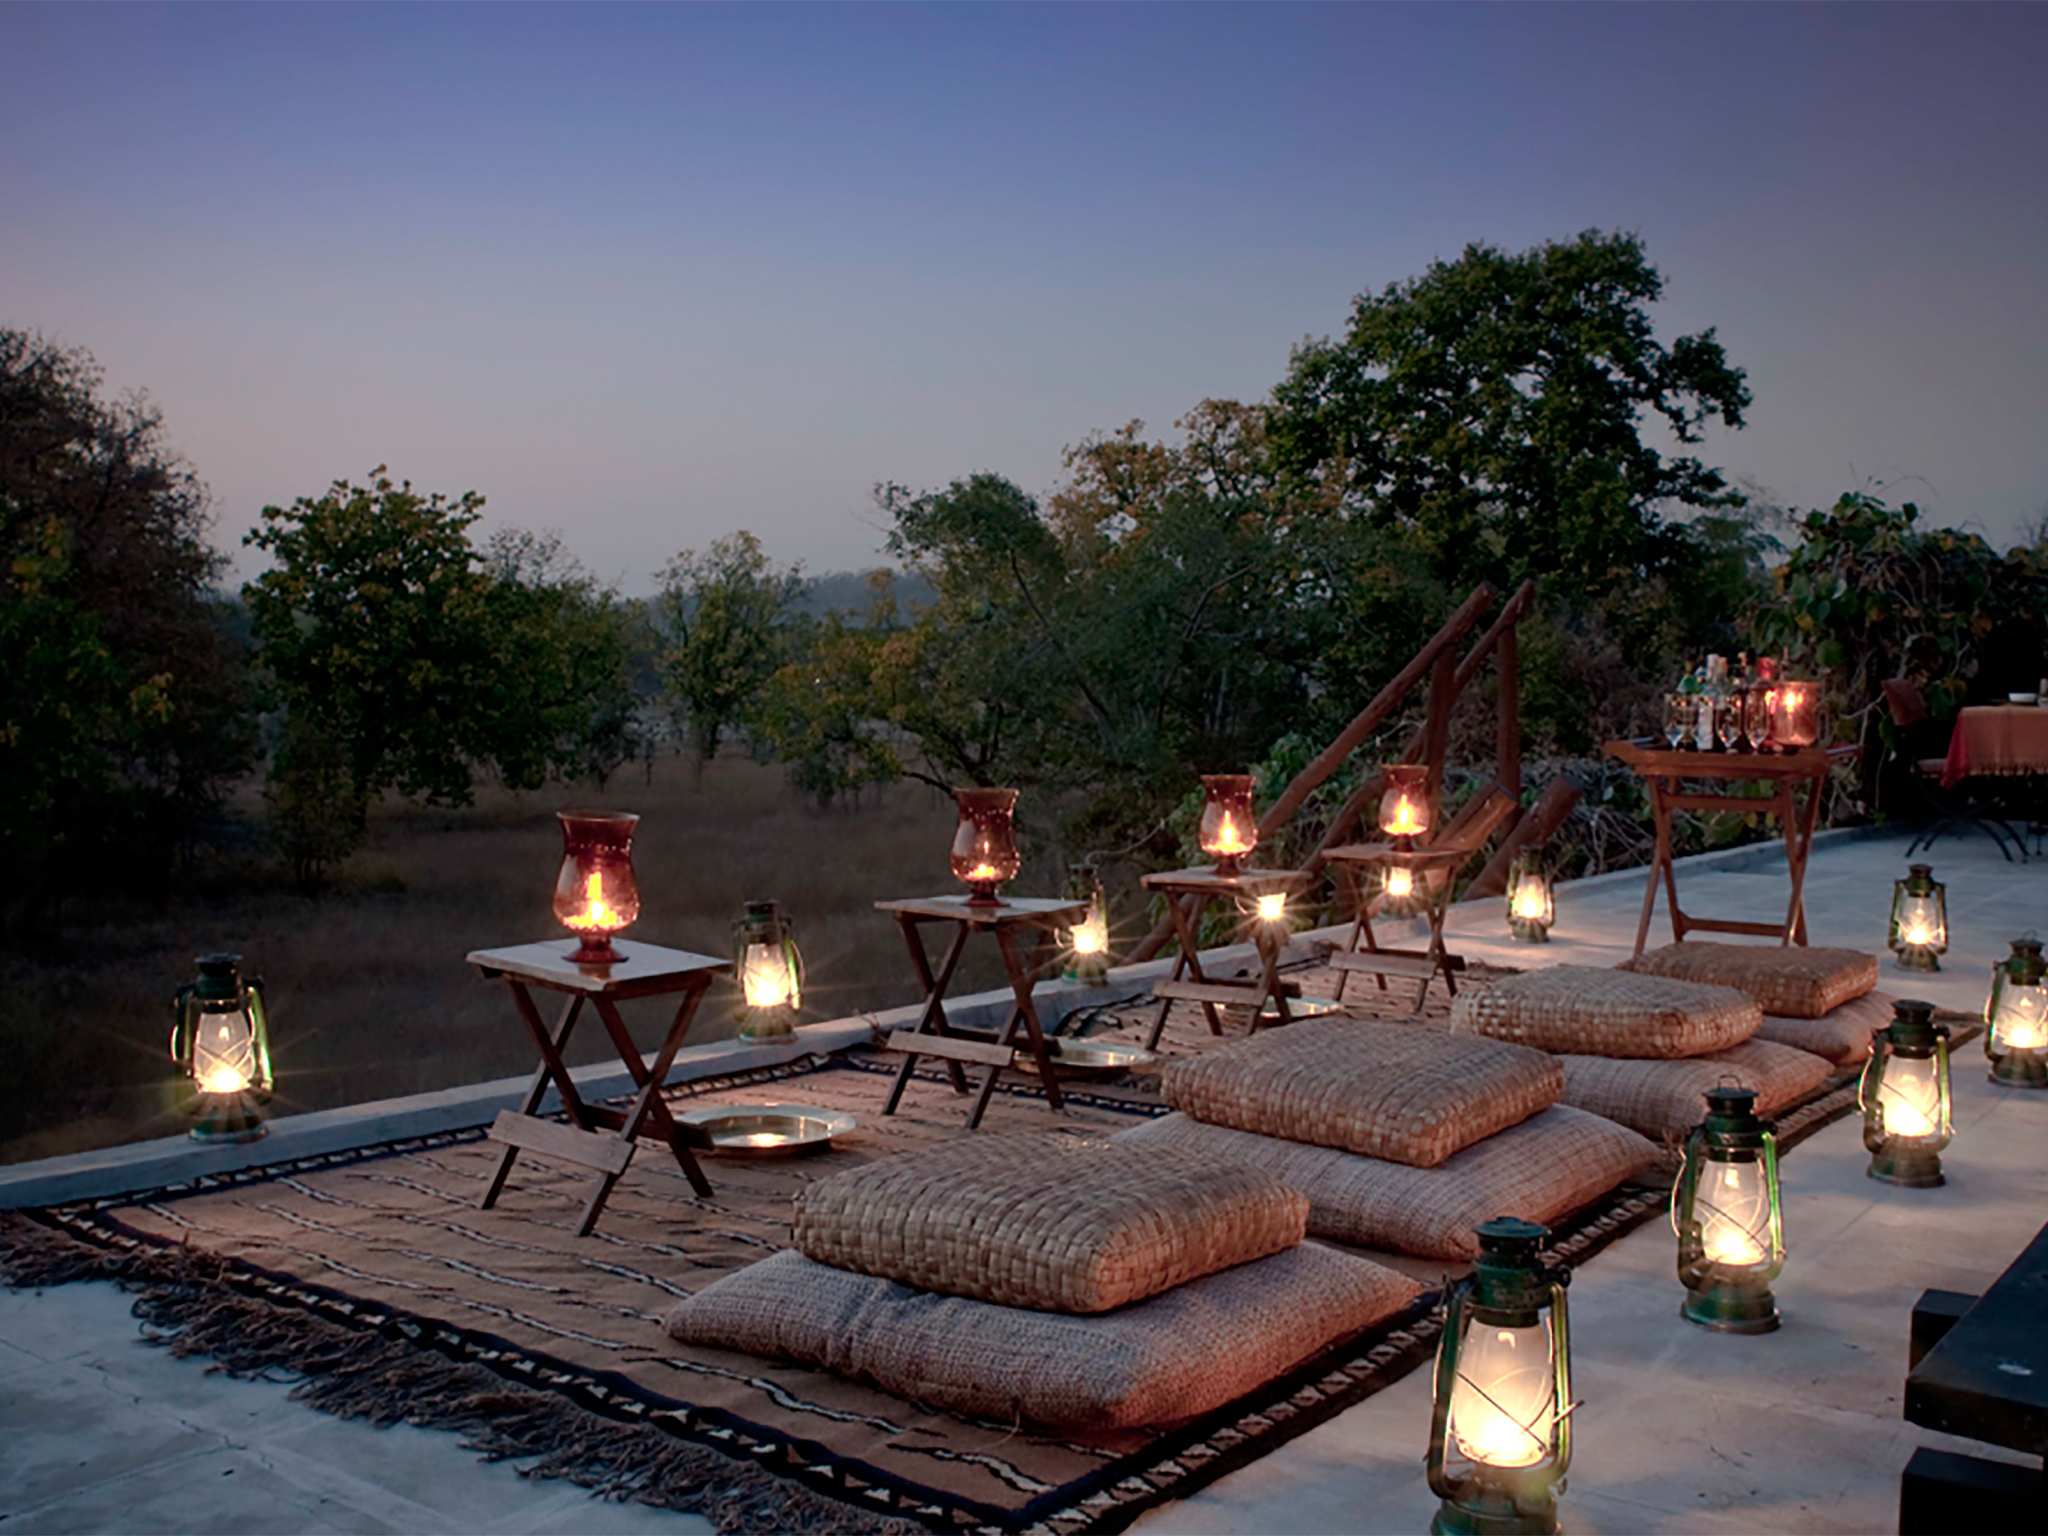 Chawki Dining Experience at Mahua Kothi, a Taj Safari Lodge